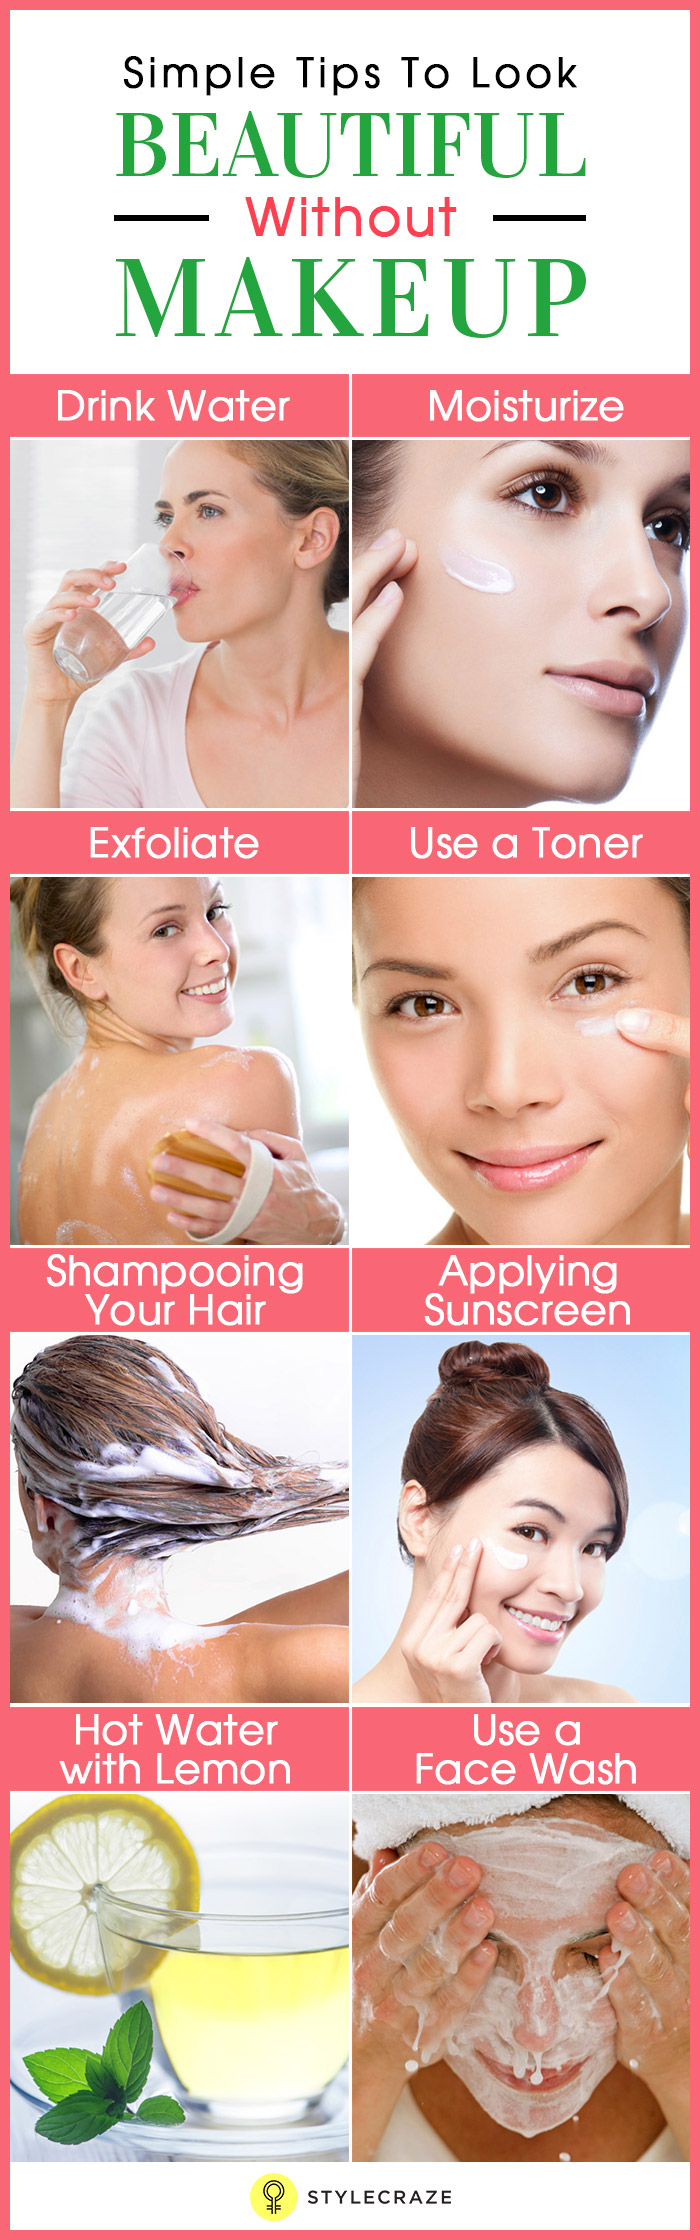 Simple-Tips-To-Look-Beautiful-Without-Makeup..,,